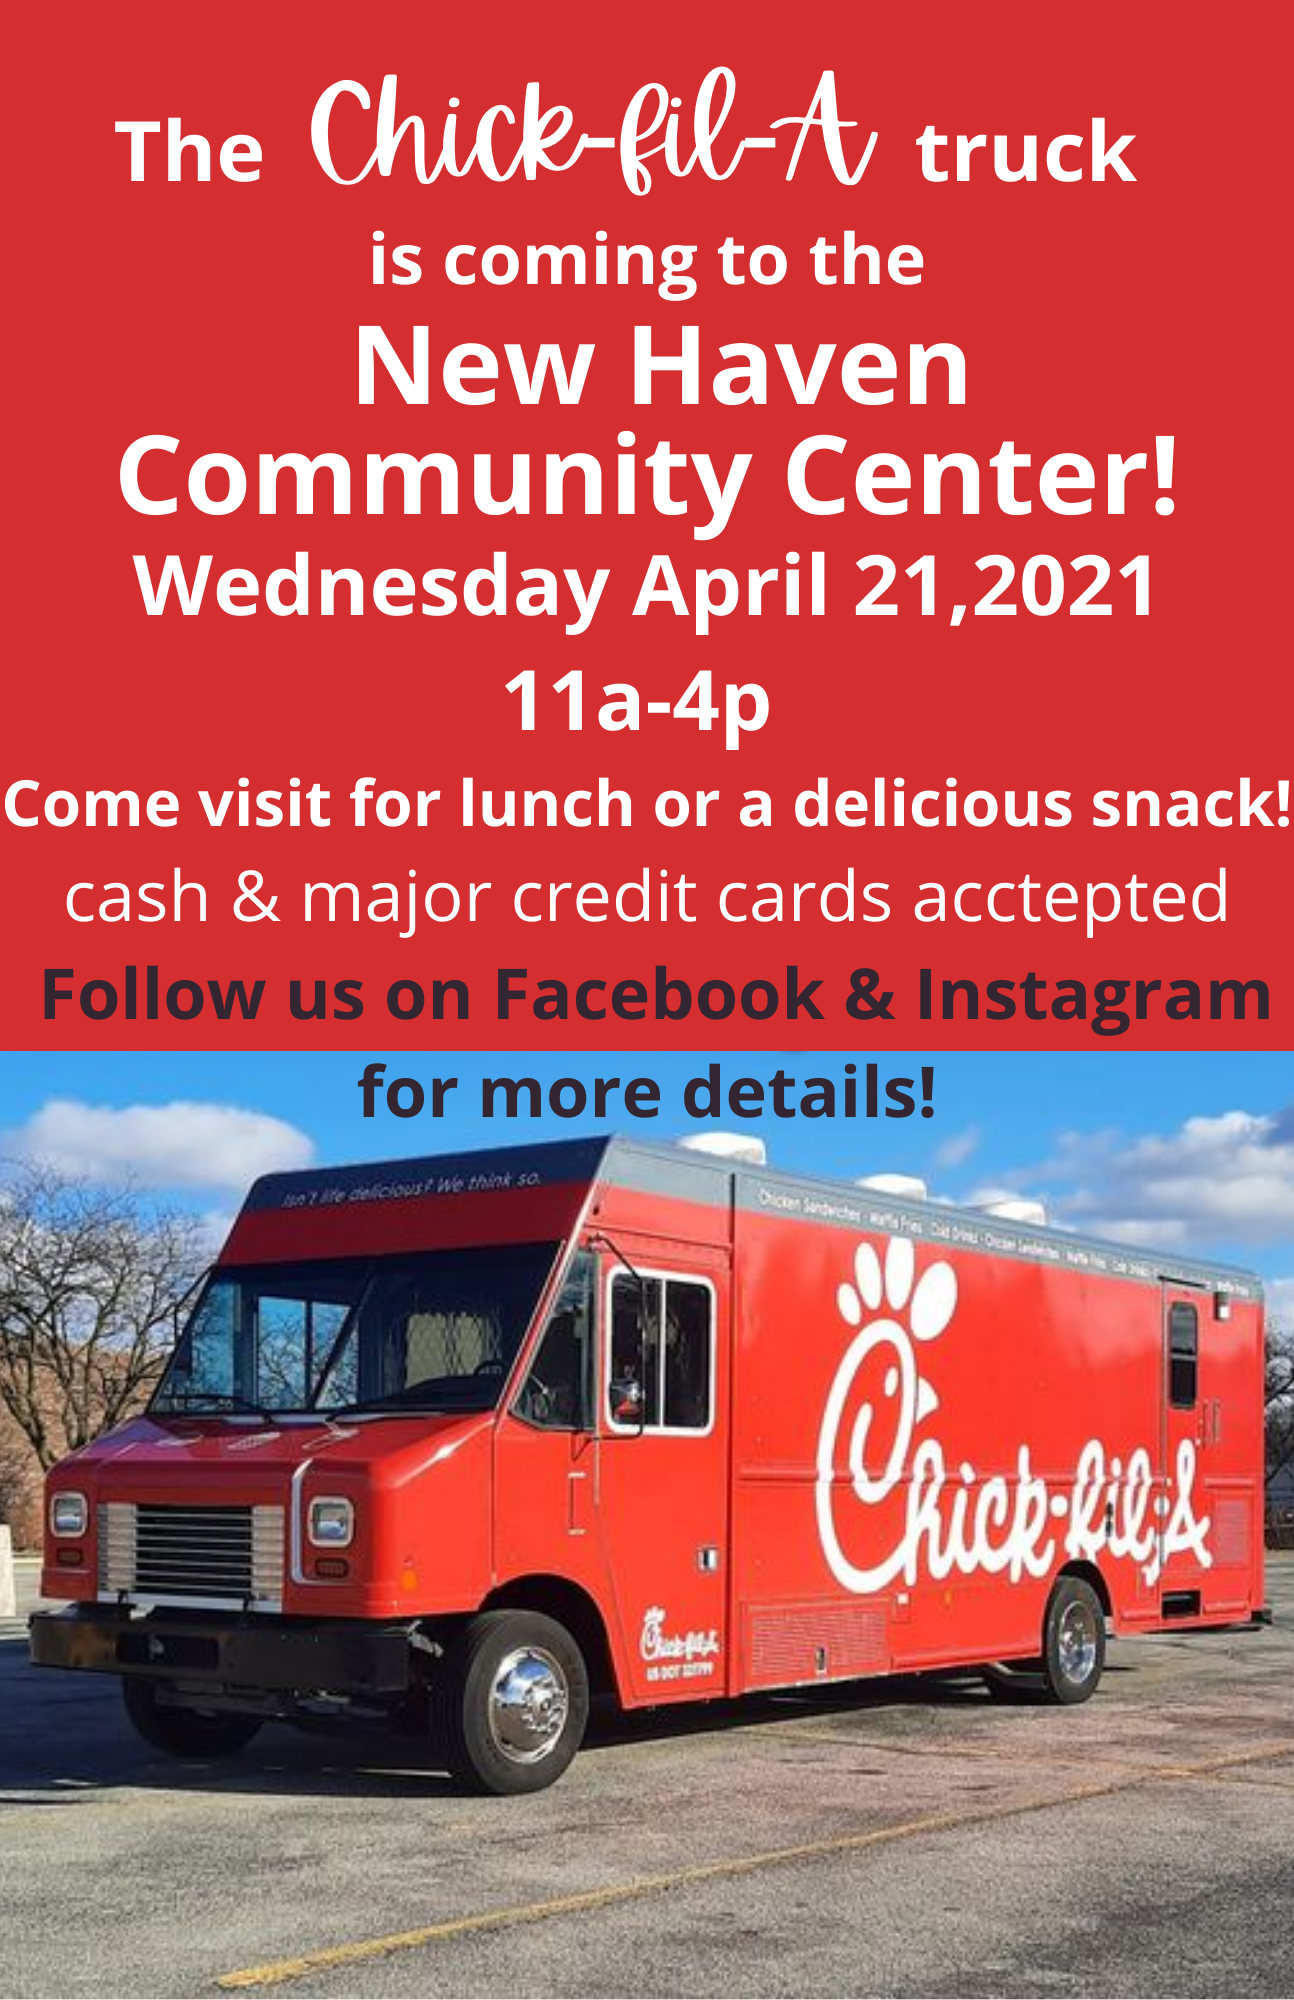 Chick-fil-A truck announcement